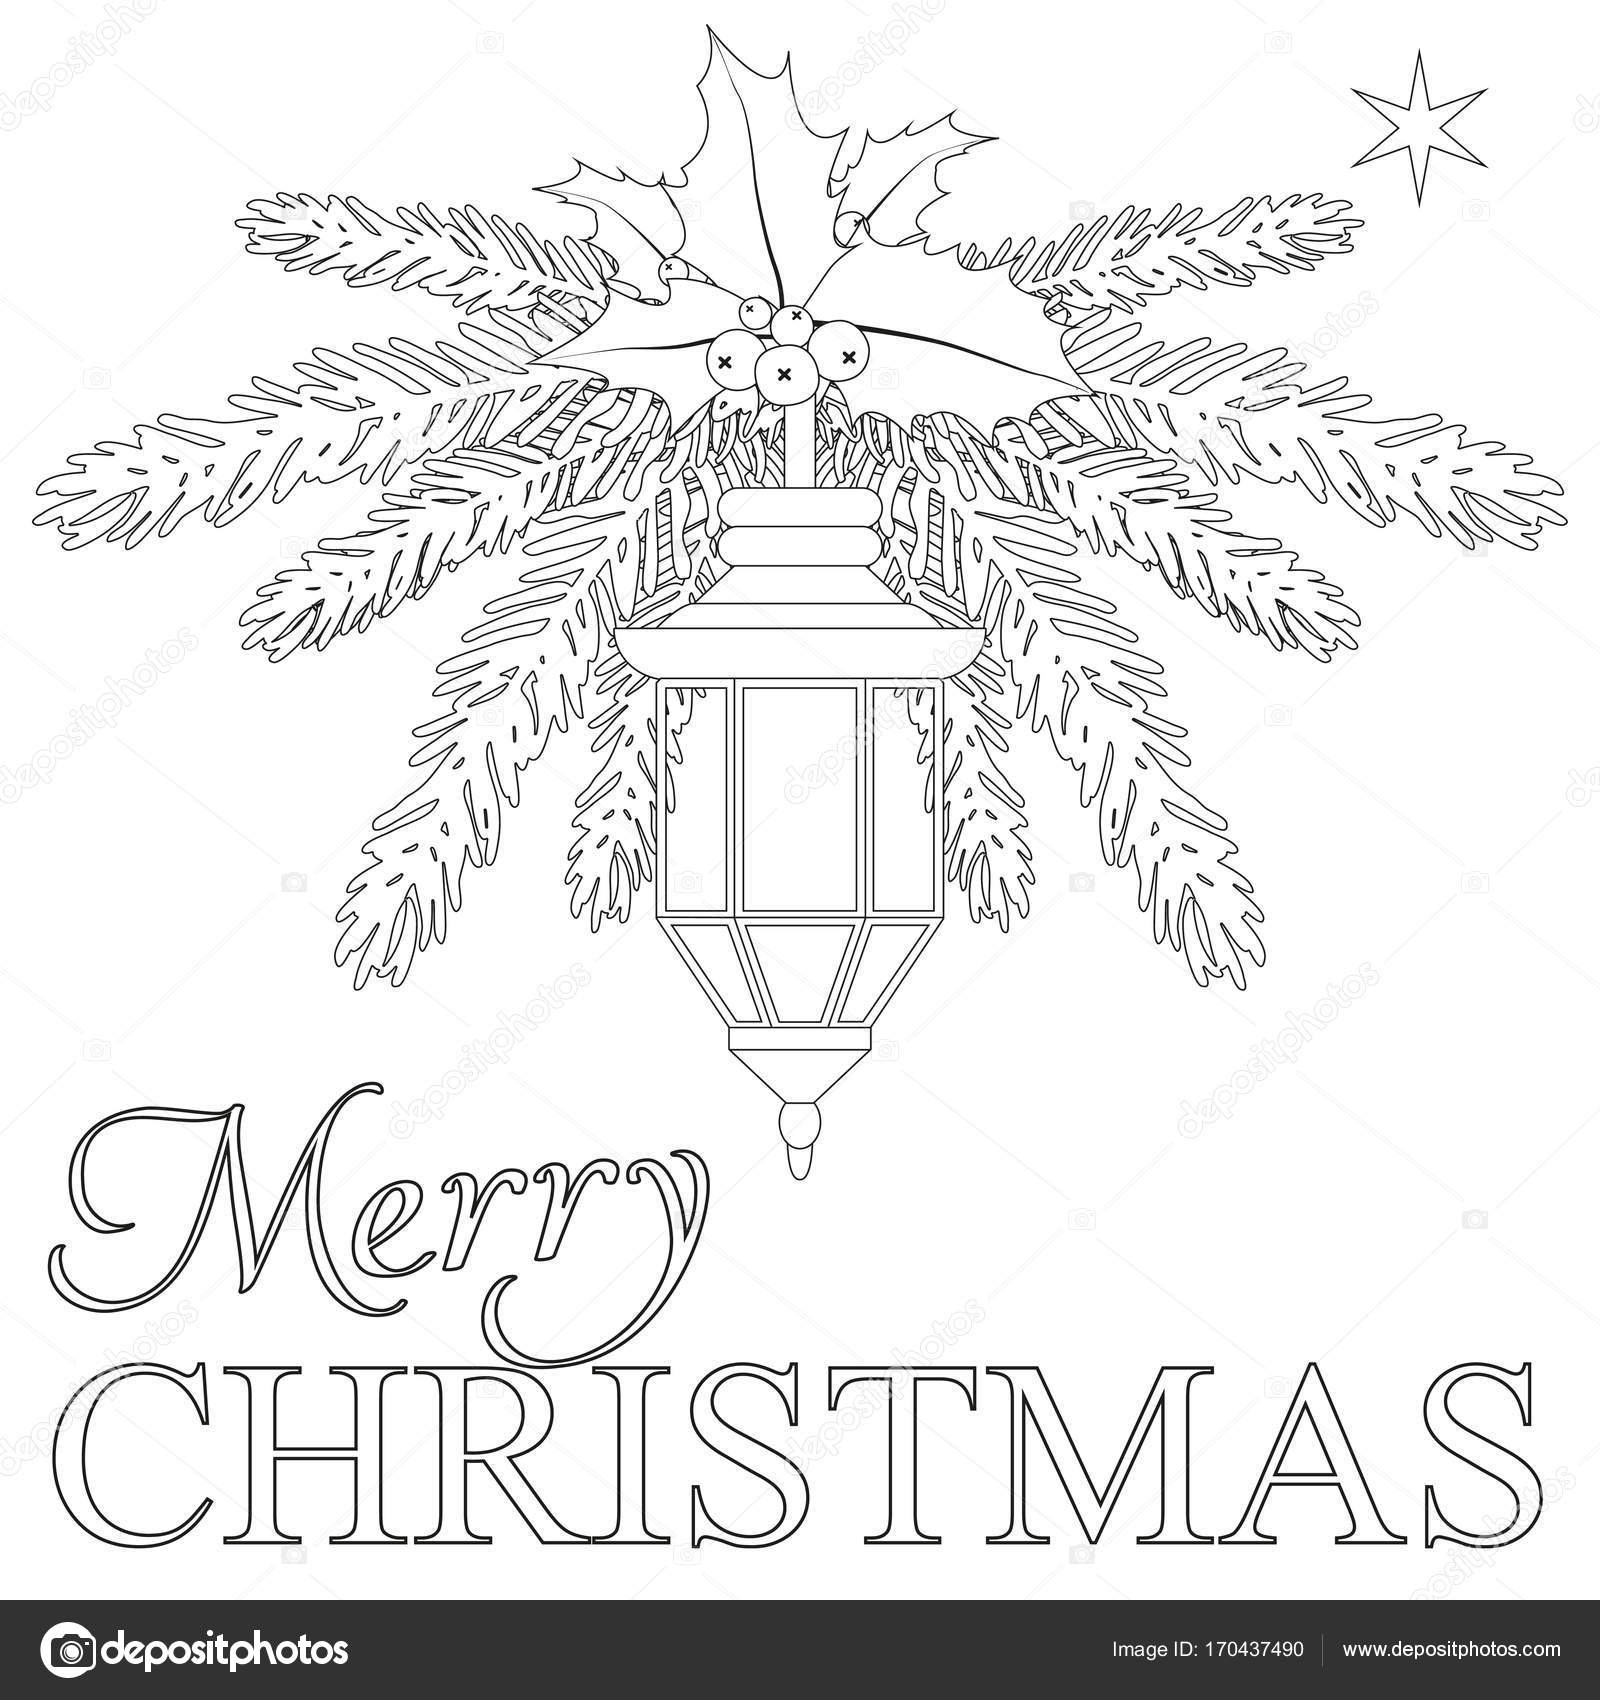 Merry Christmas coloring book page — Stock Vector © bessyana #170437490